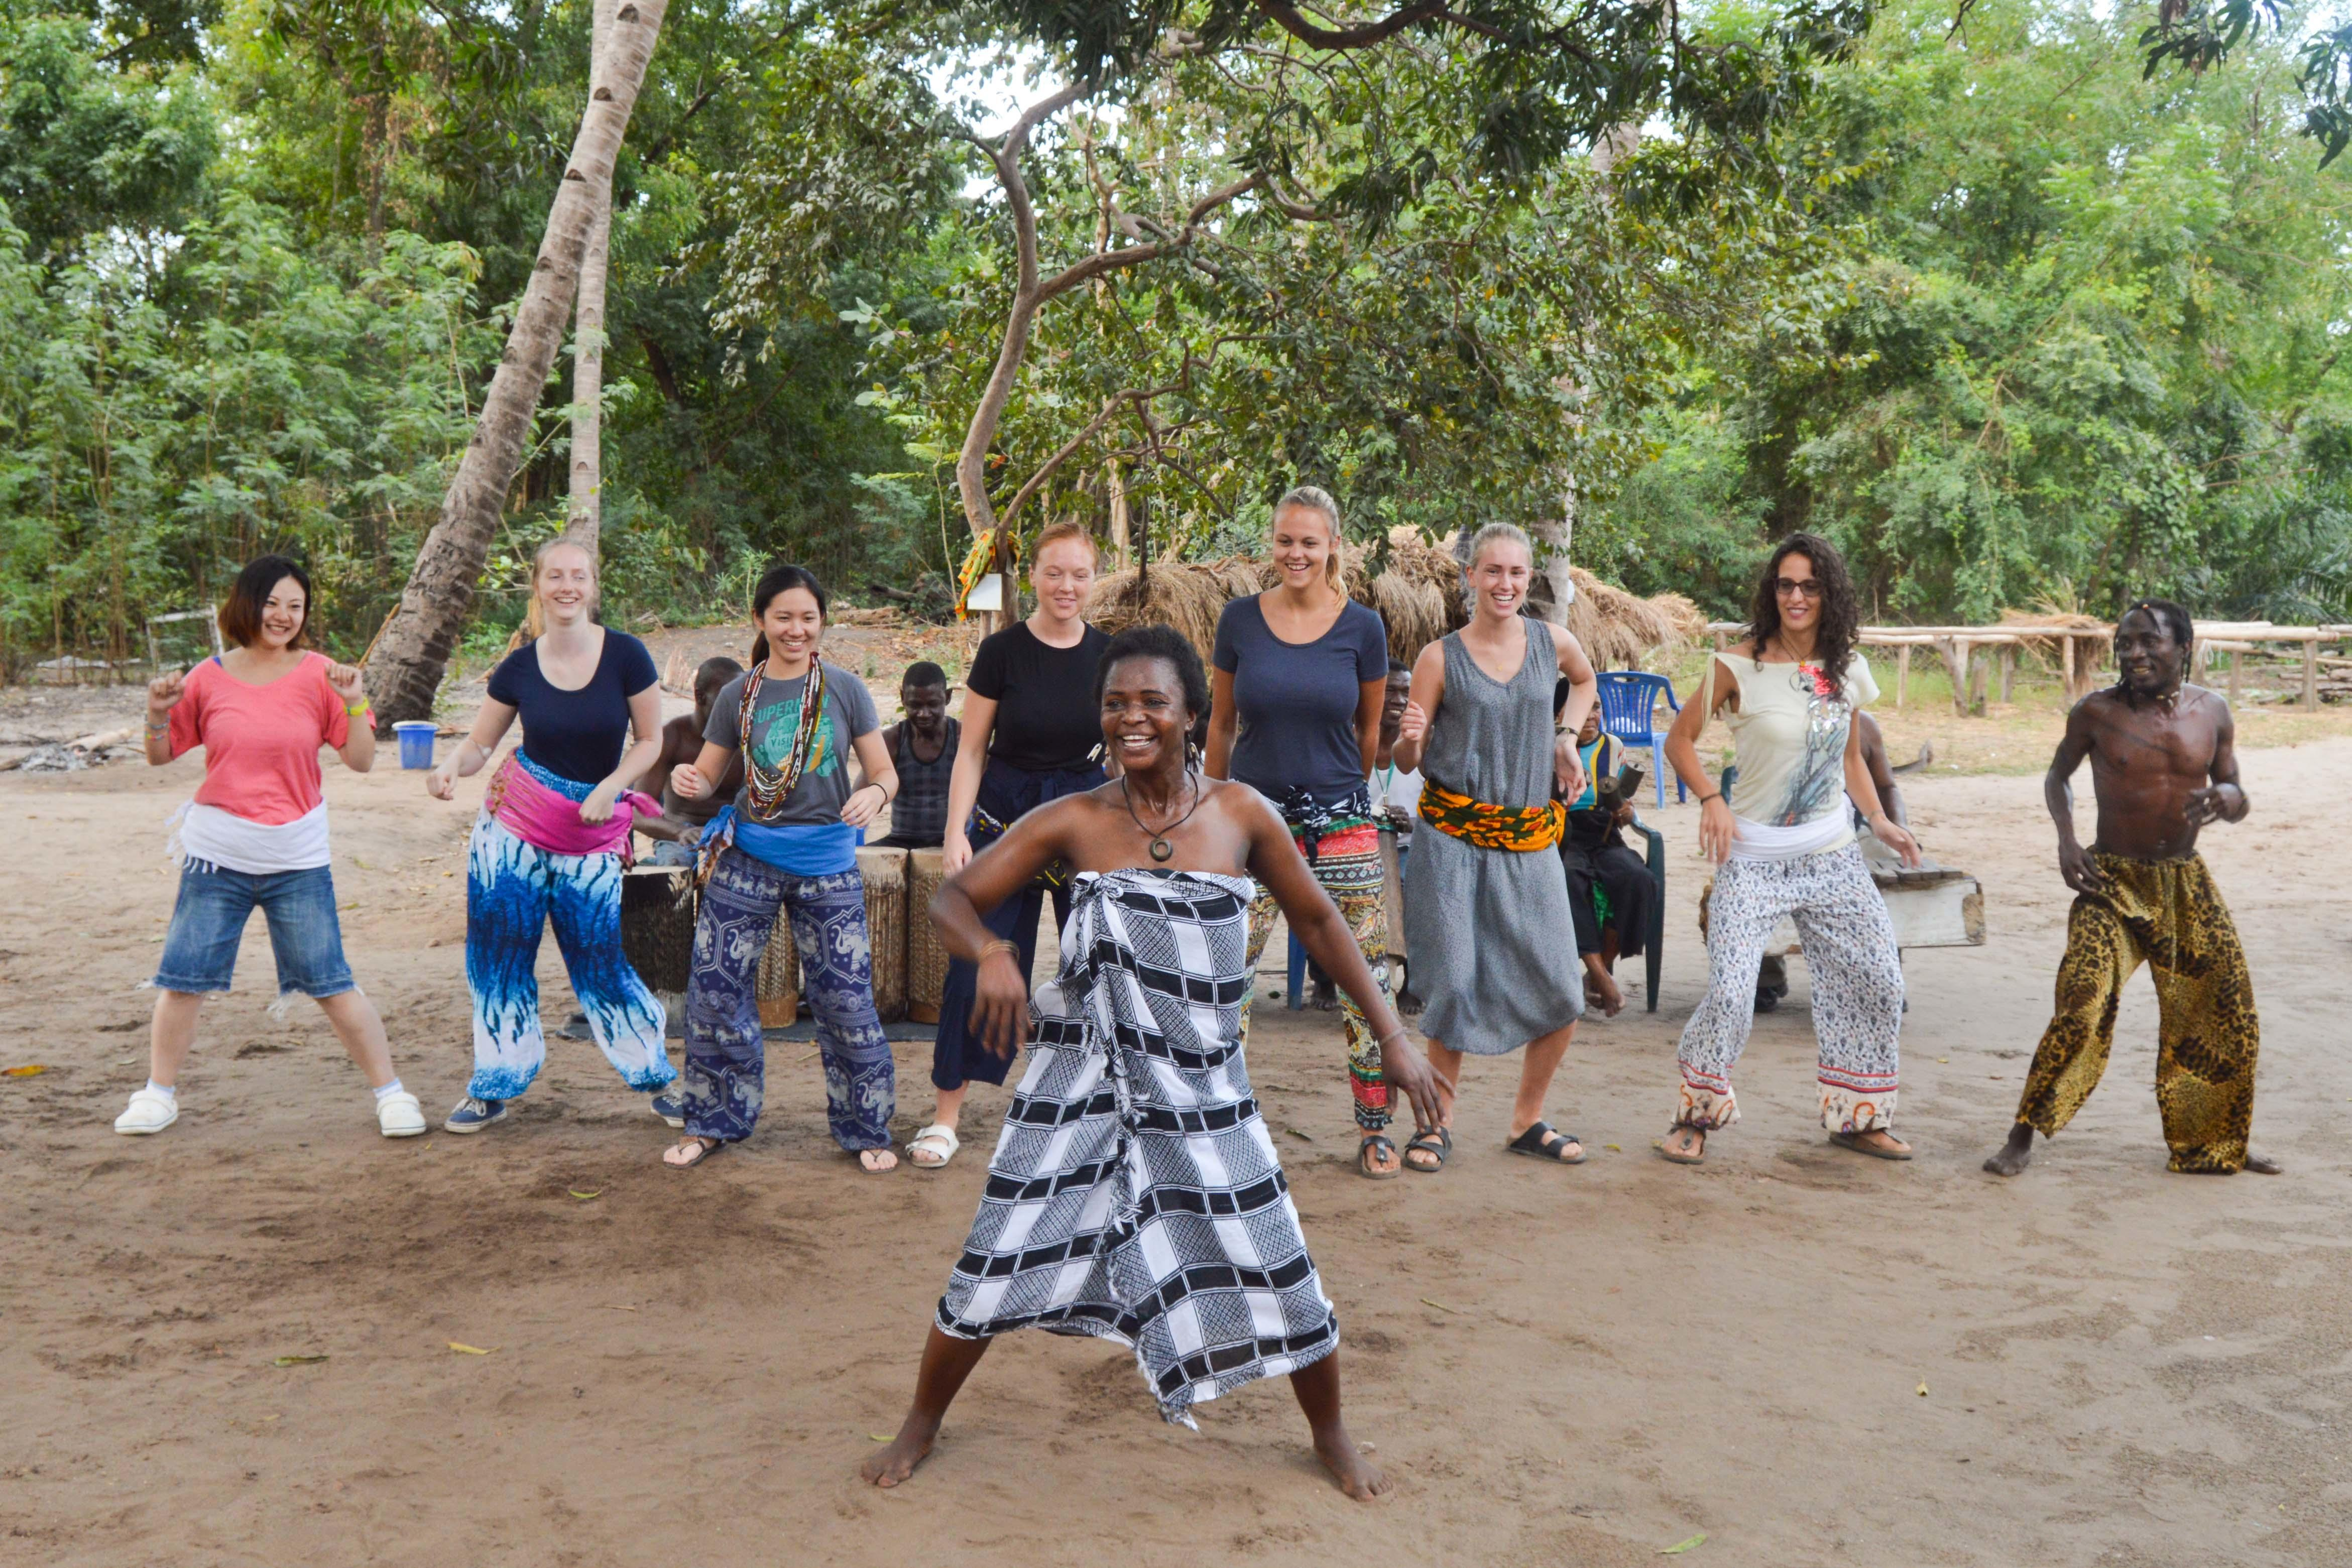 Volunteers learn about local culture during volunteer work in Tanzania for teenagers